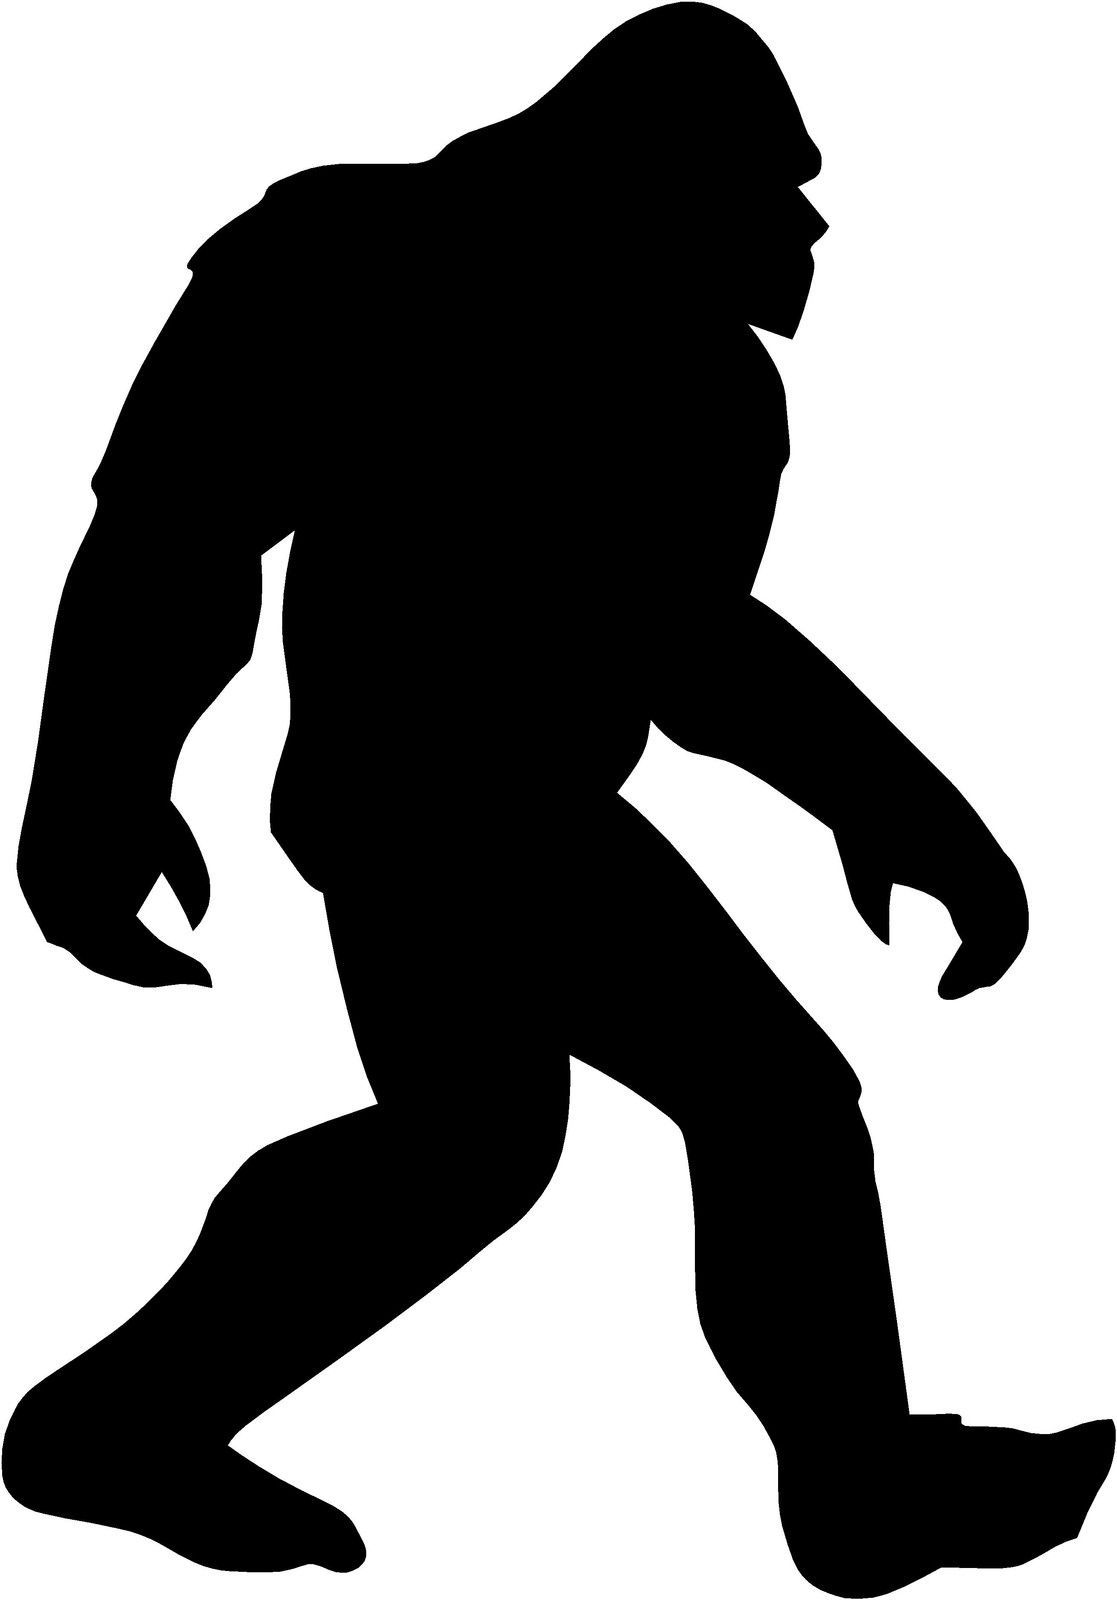 2 5 bigfoot sasquatch yeti decal 5 75 x3 75 choose color ebay rh pinterest com bigfoot clipart bigfoot clipart black and white